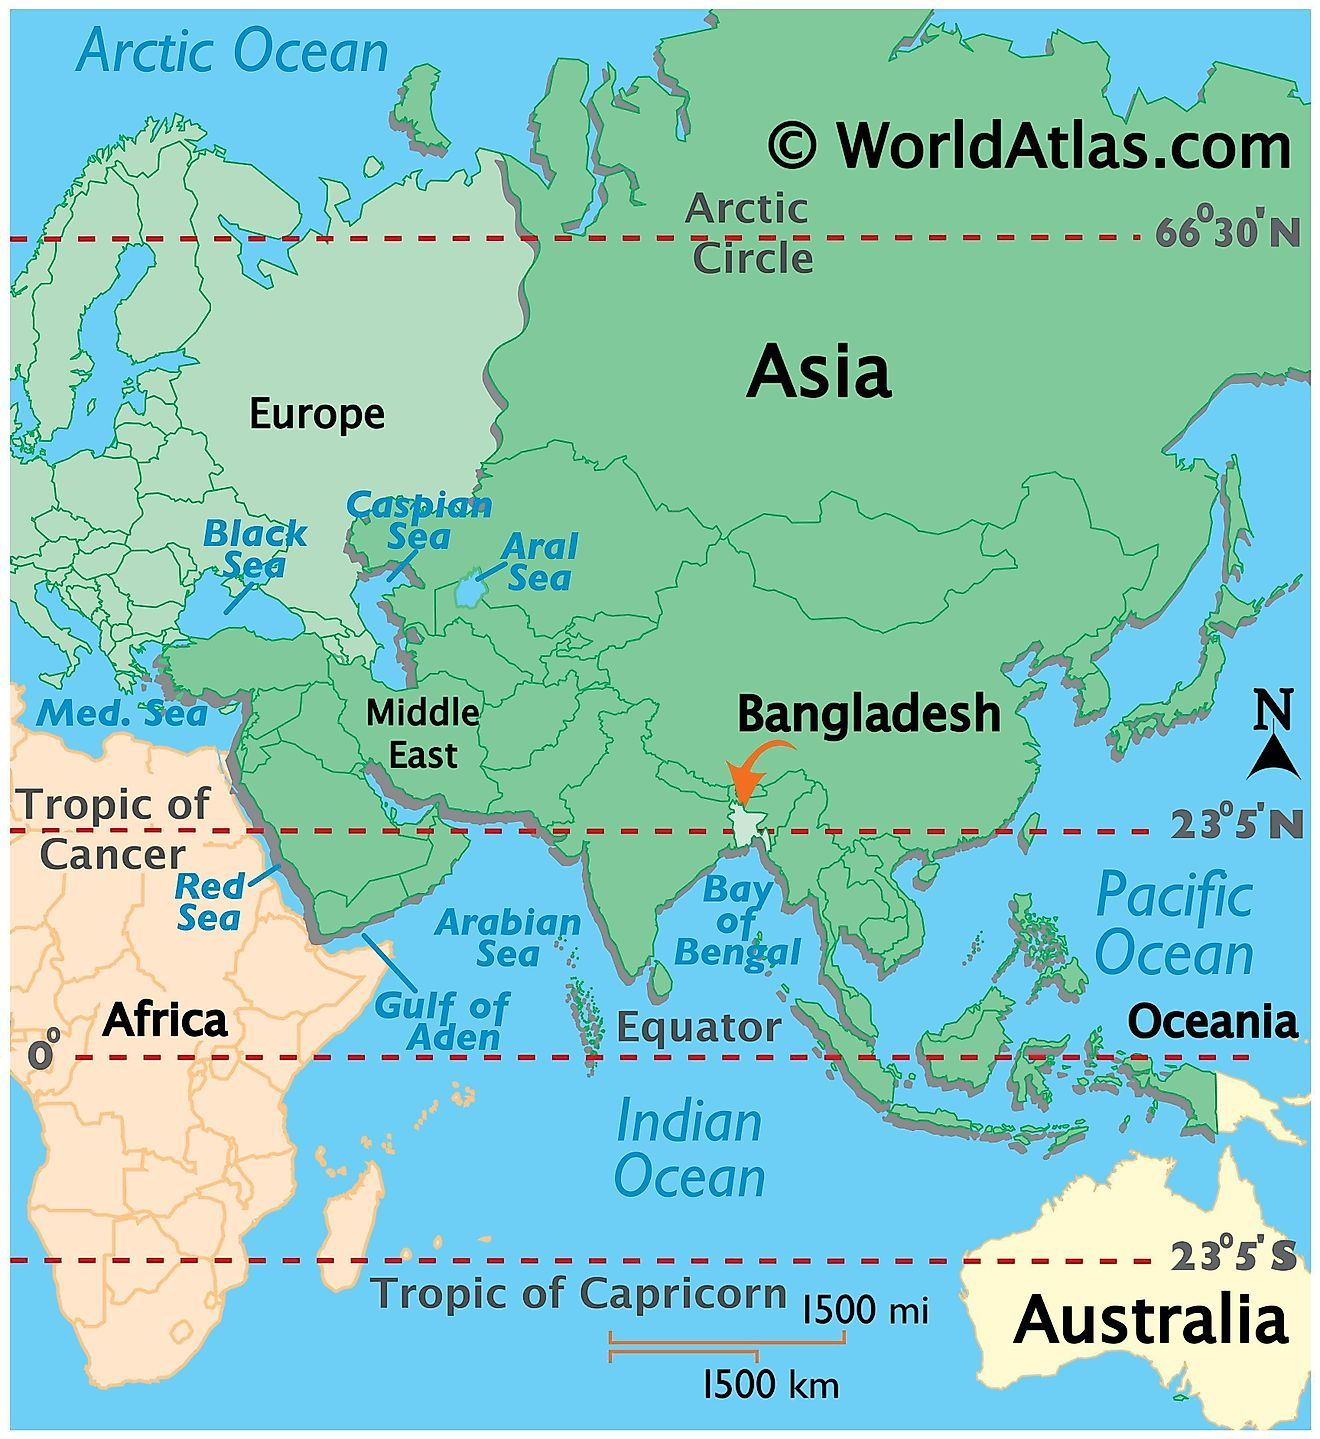 Map showing location of Bangladesh in the world.